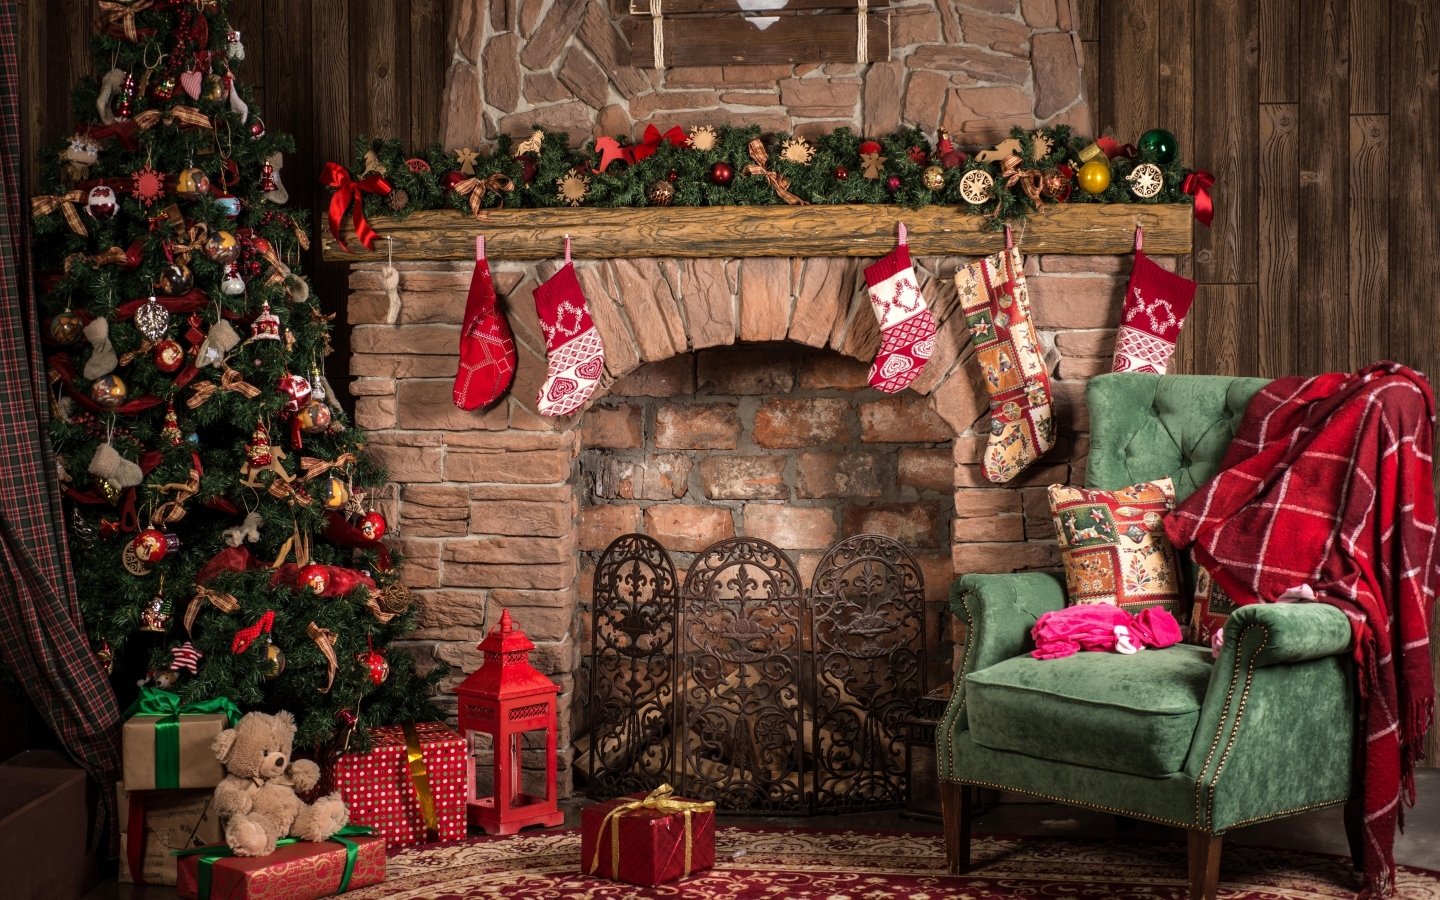 Cozy Christmas Decor  for 1440 x 900 widescreen resolution